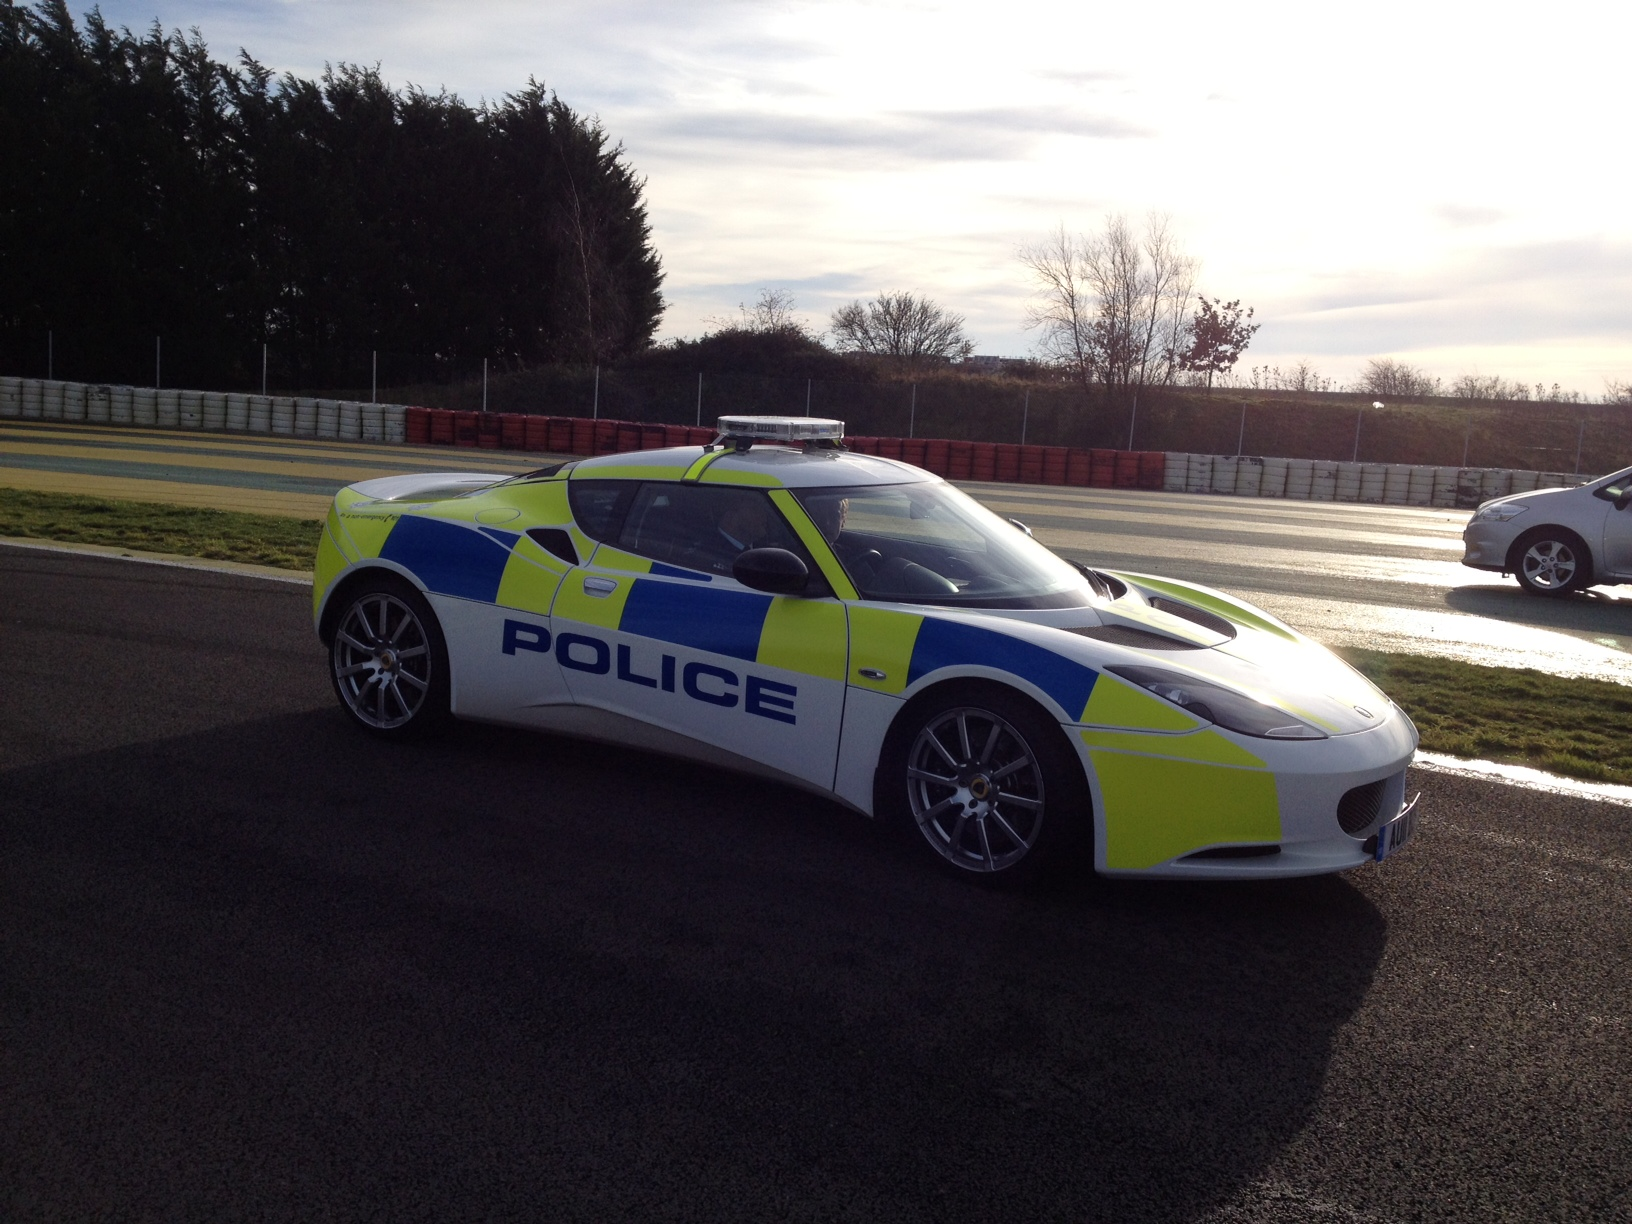 East Police Get Lotus Sports Car To Fight Drink Driving Heart - Sports cars vs police